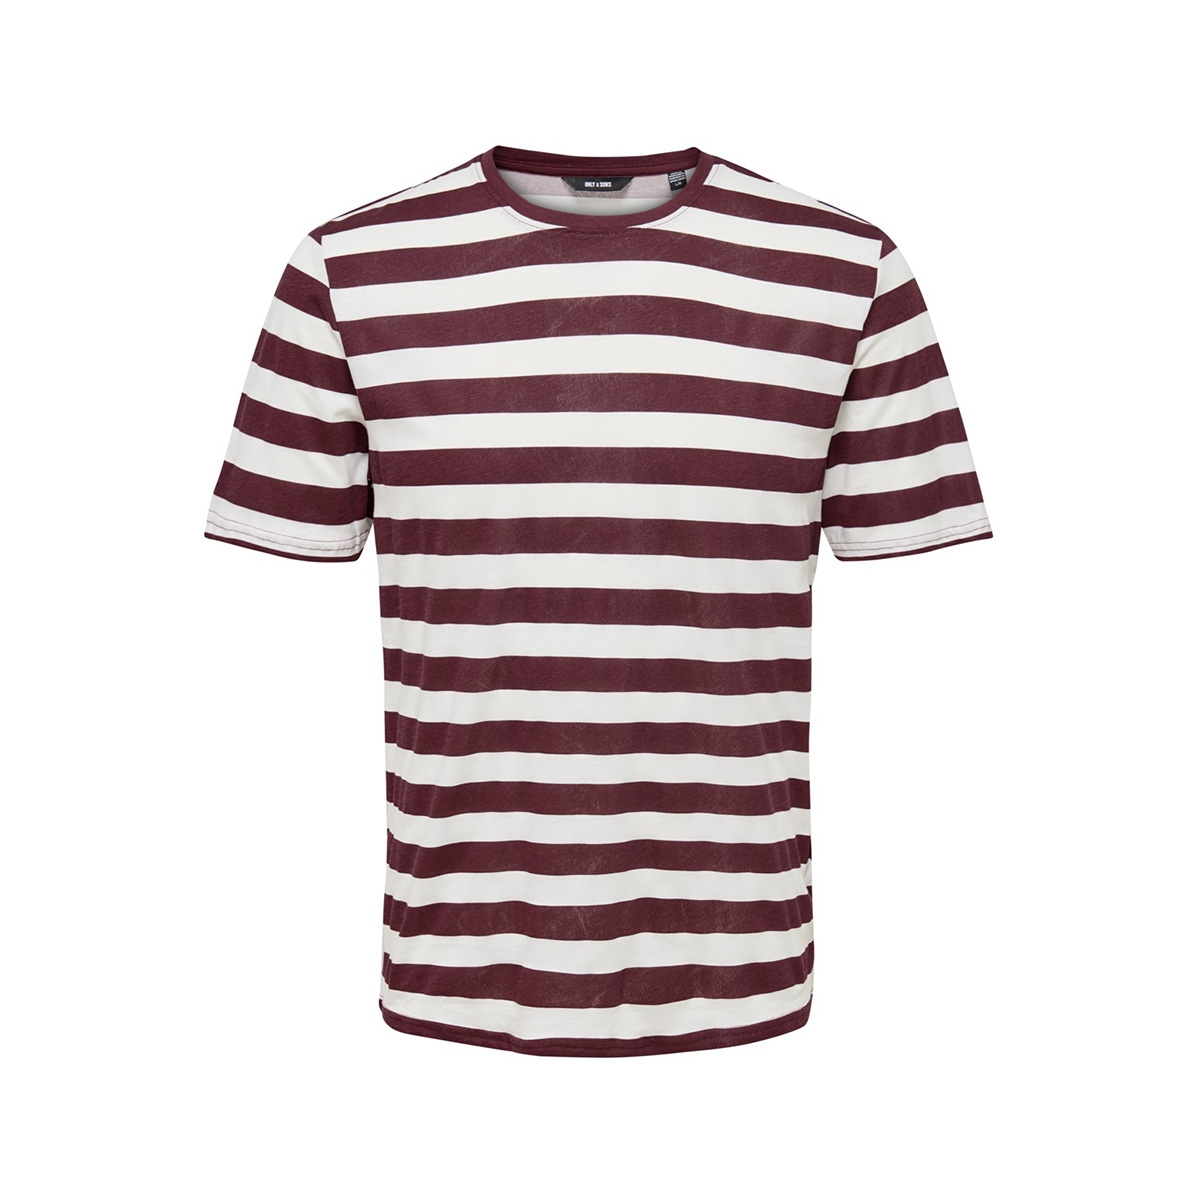 onscole striped ss tee vd 22013579 only & sons t-shirt zinfandel/white